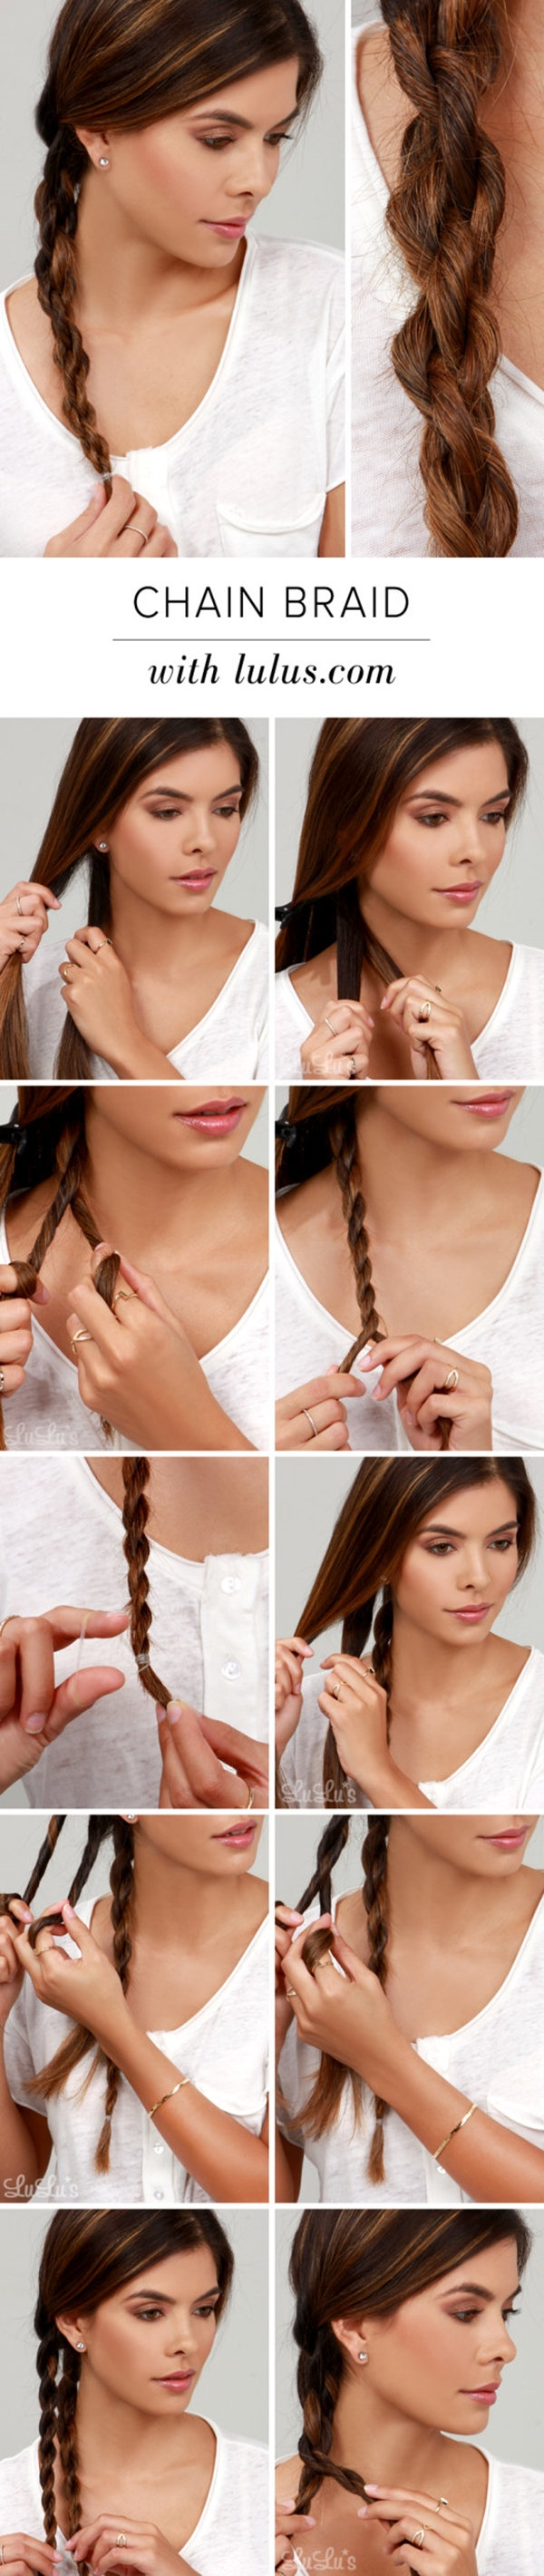 10 diy hairstyle in a minute (6)